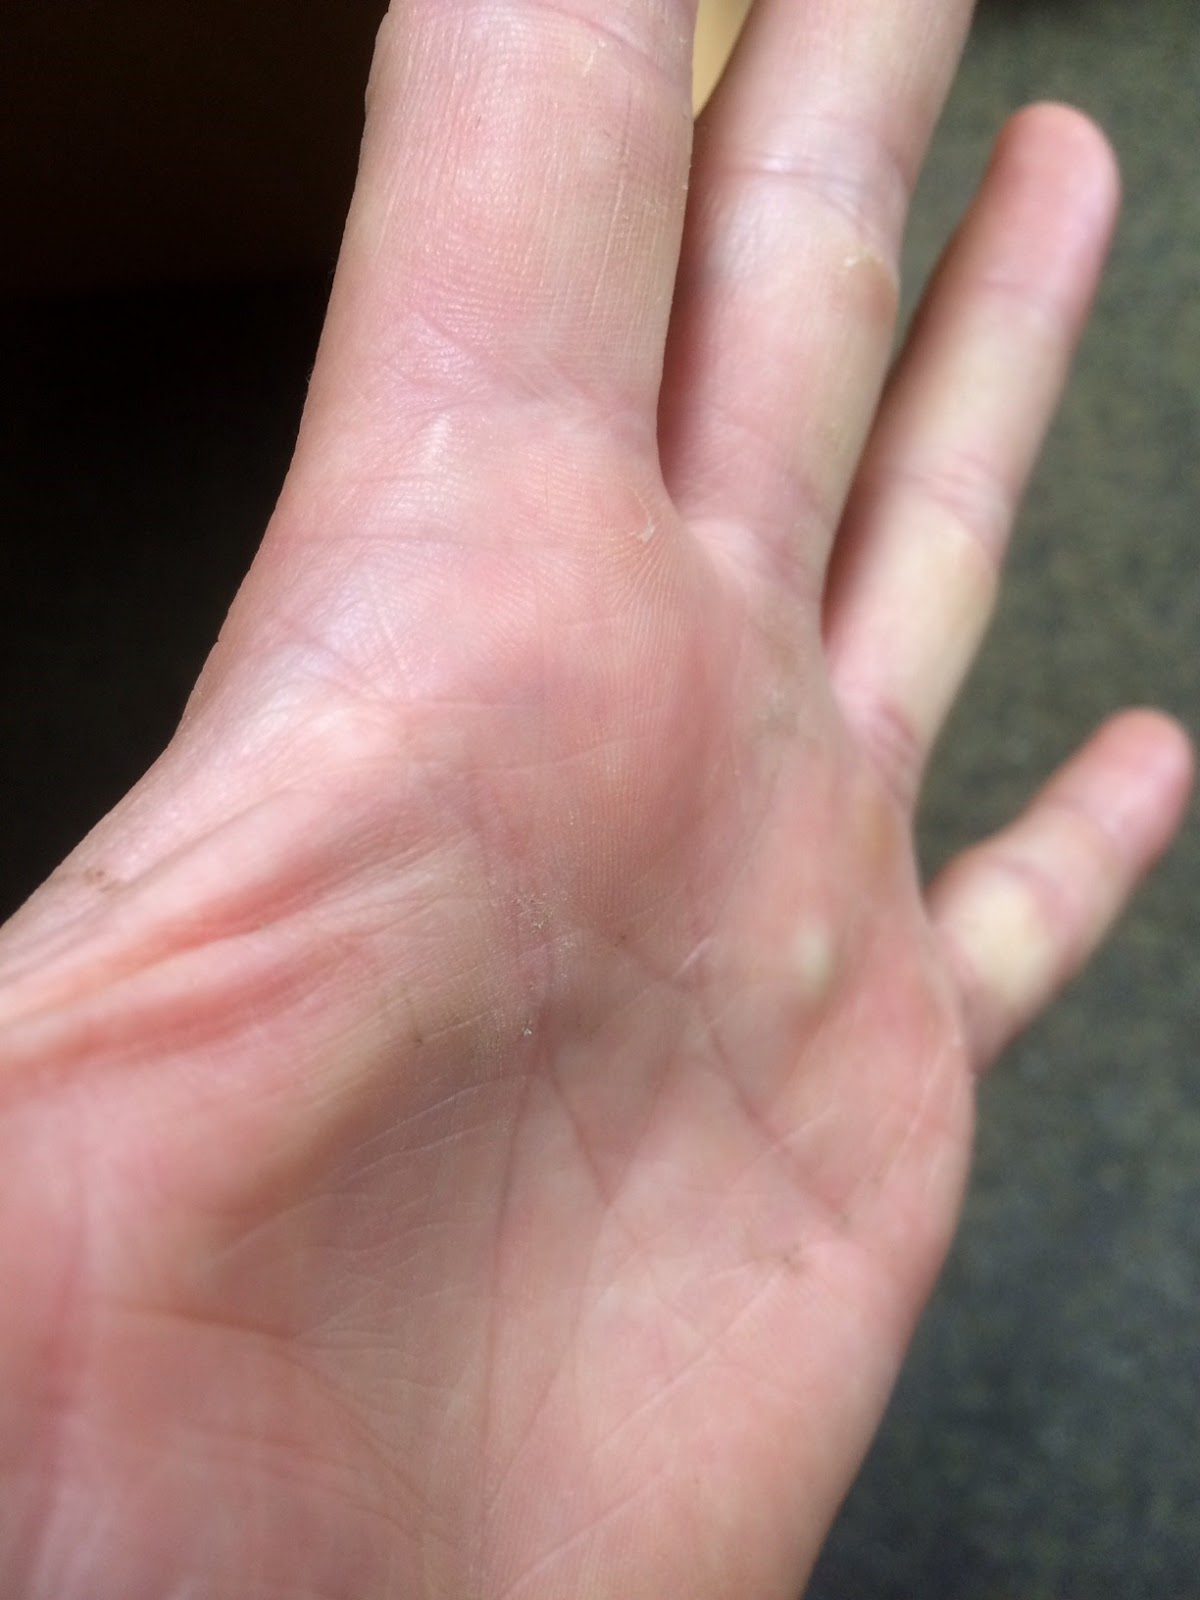 The lump in my hand